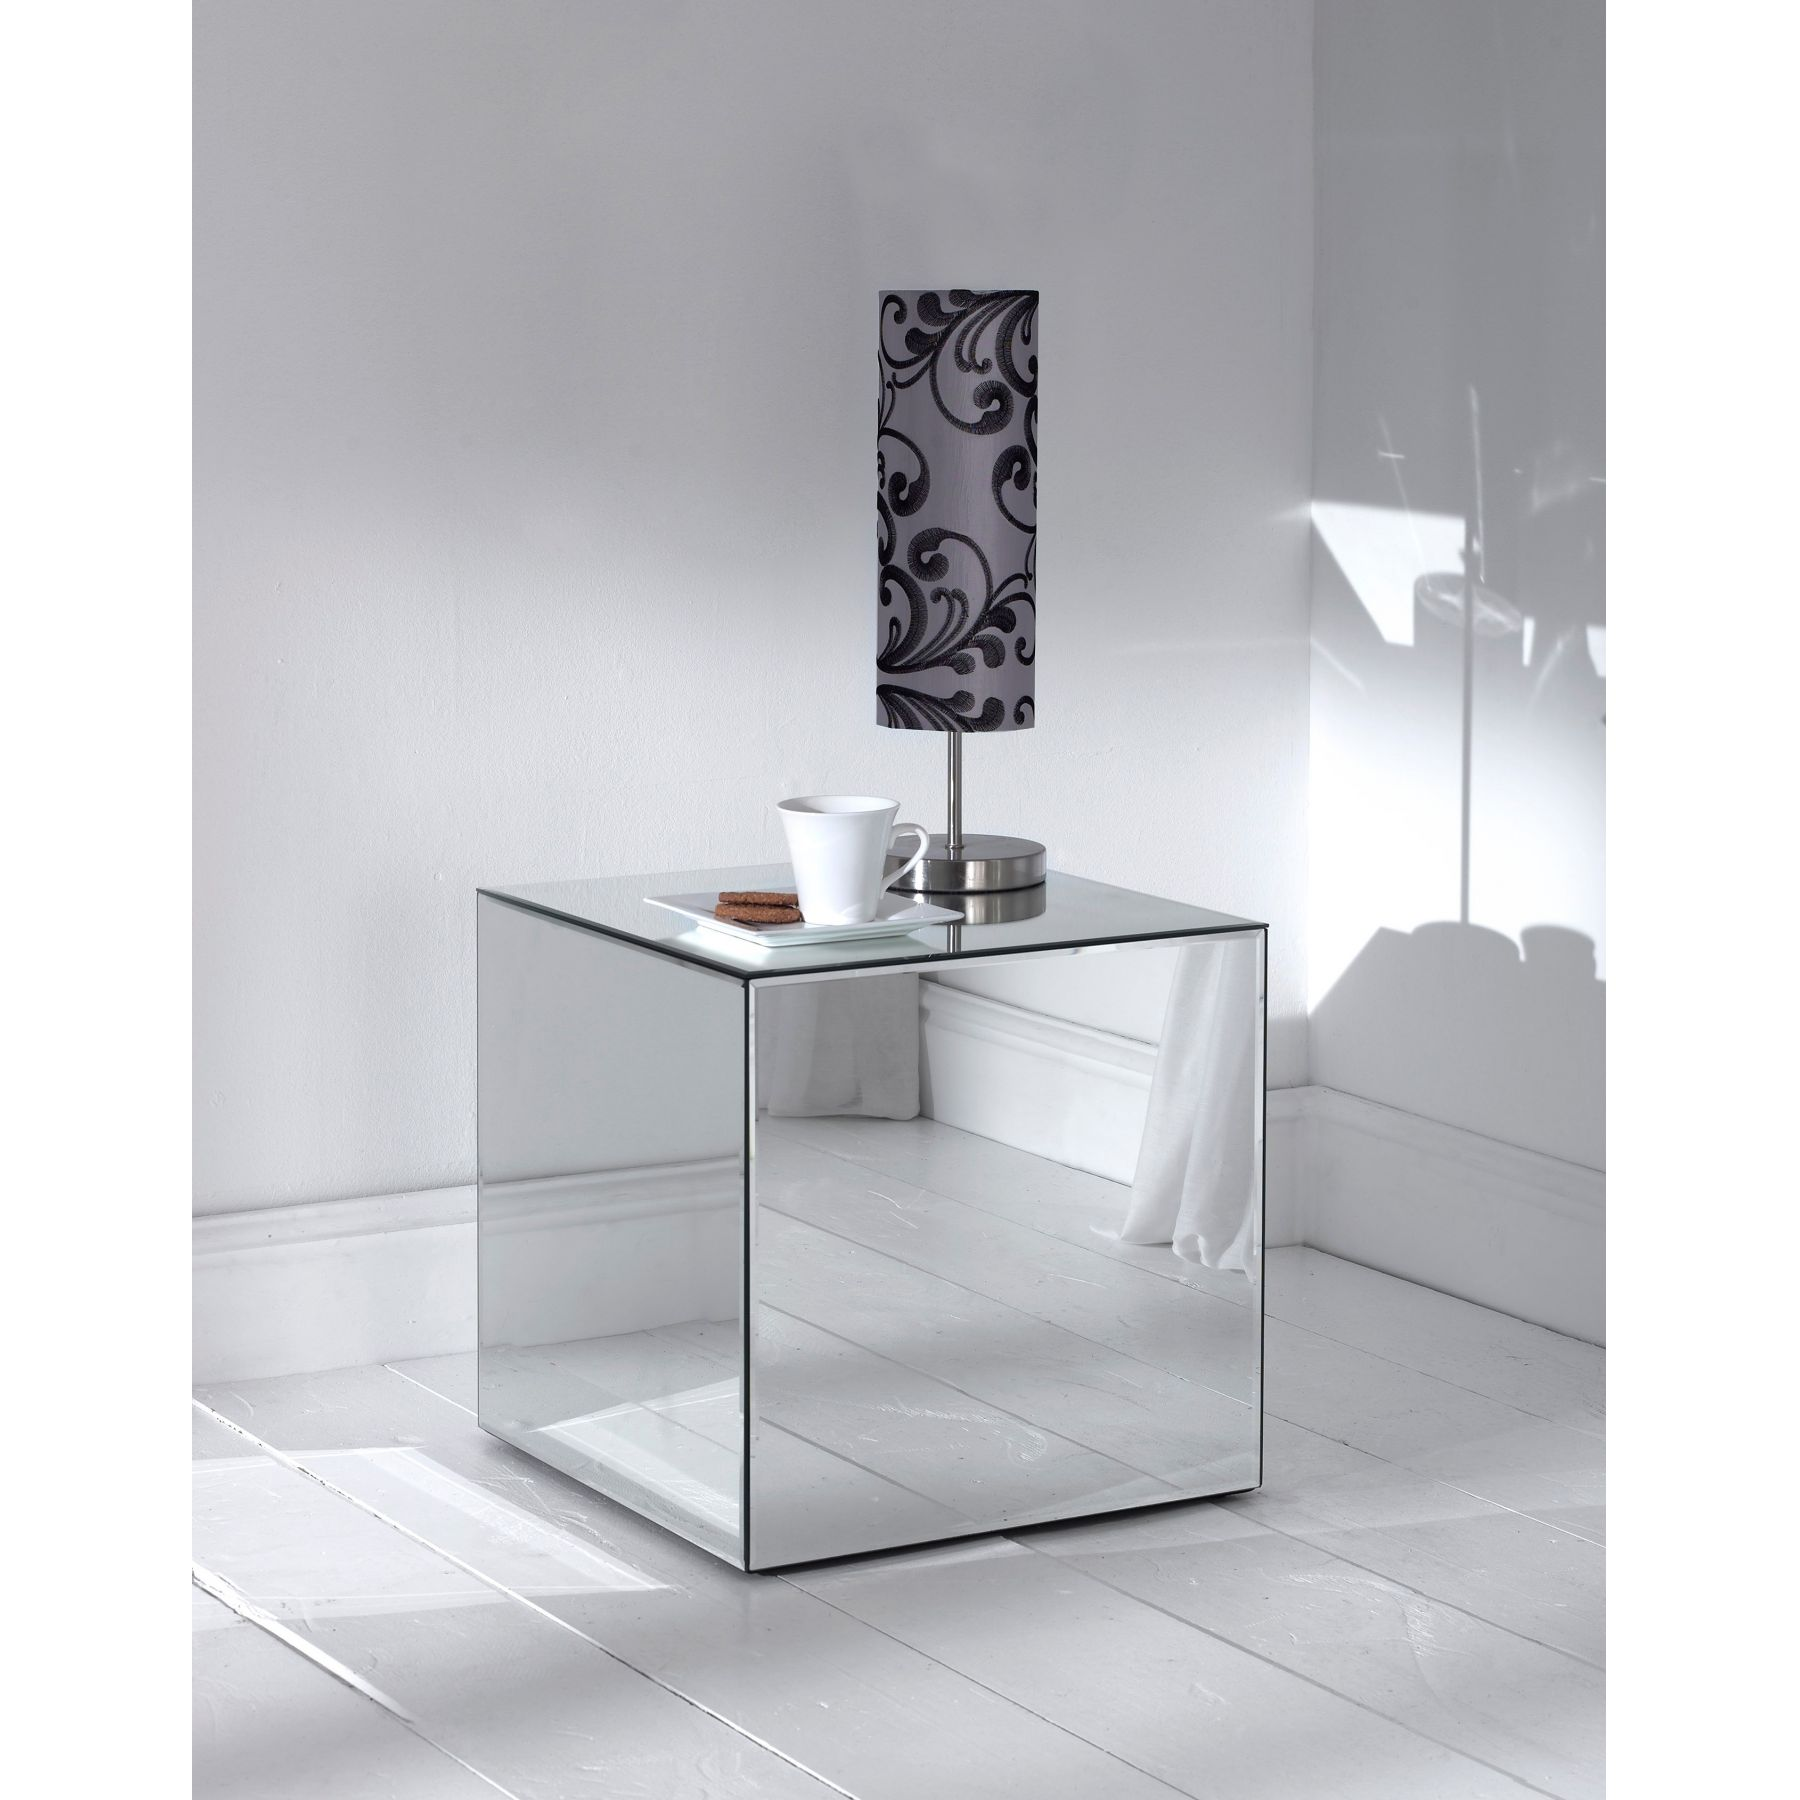 furniture accessories unique modern mirrored glass accent table cube shaped laminate mirror side with polished wood bedroom flooring and tube steel lamp designs unusual make